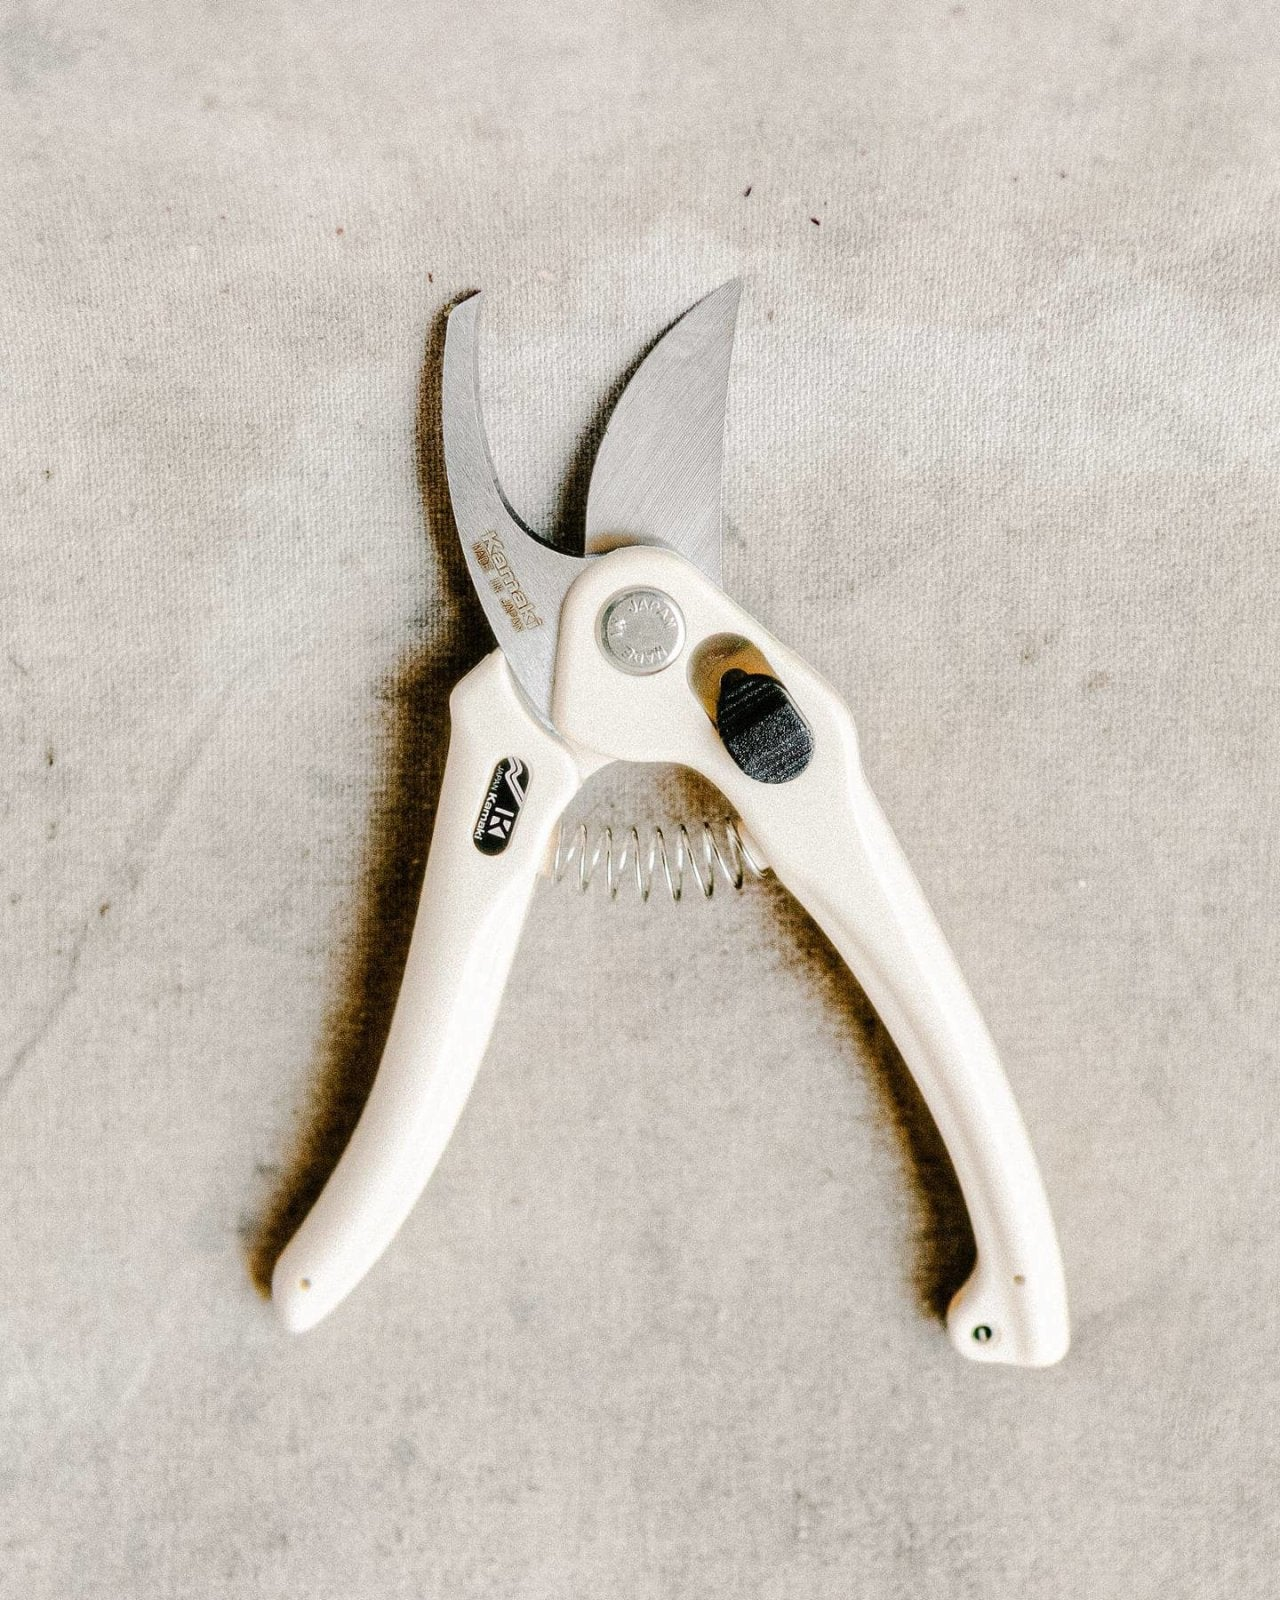 Kamaki Pruners (versatile for the garden), Tool Delivery, The Unlikely Florist